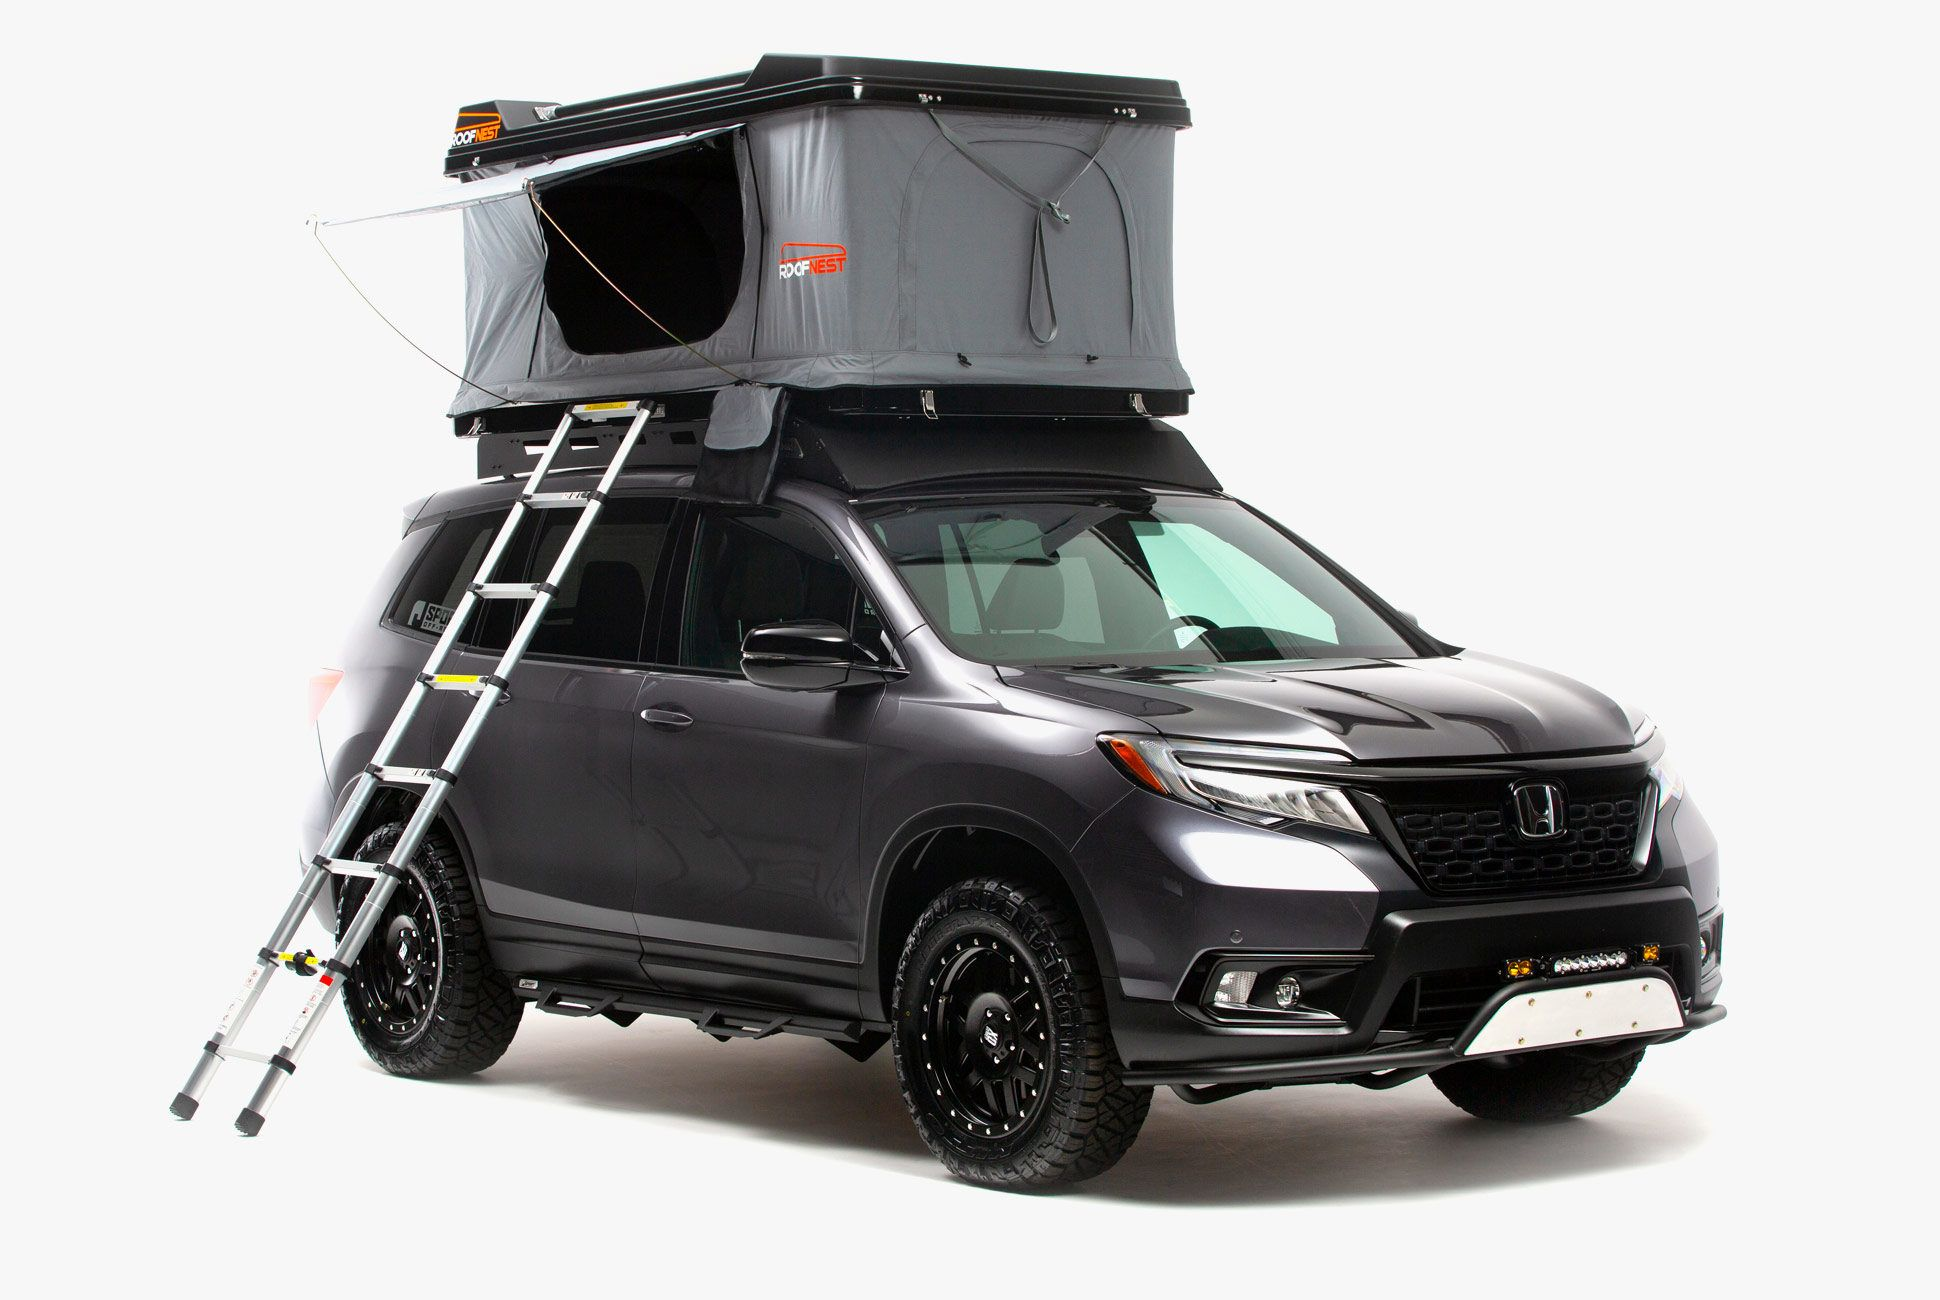 Honda-Passport-Overlander-gear-patrol-slide-5